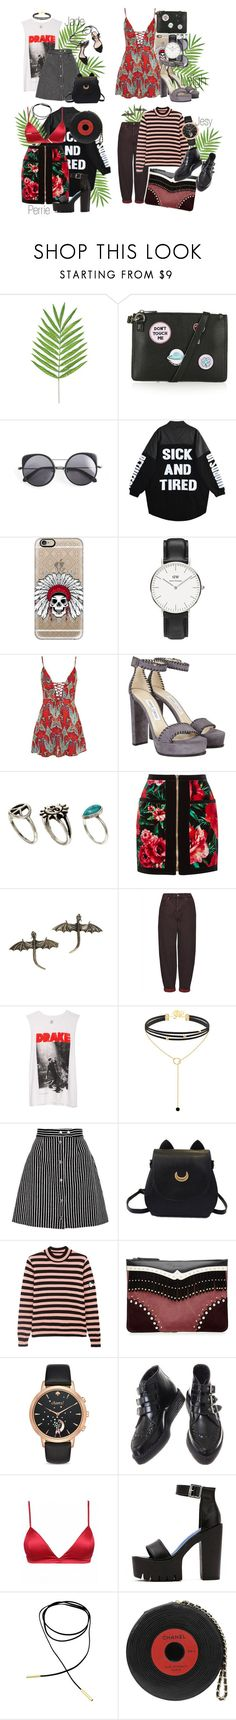 """Burning cities LM"" by voidjesy ❤ liked on Polyvore featuring Topshop, Wood Wood, Casetify, Daniel Wellington, Loeffler Randall, Jimmy Choo, ASOS, Balmain, Hot Topic and Boutique"